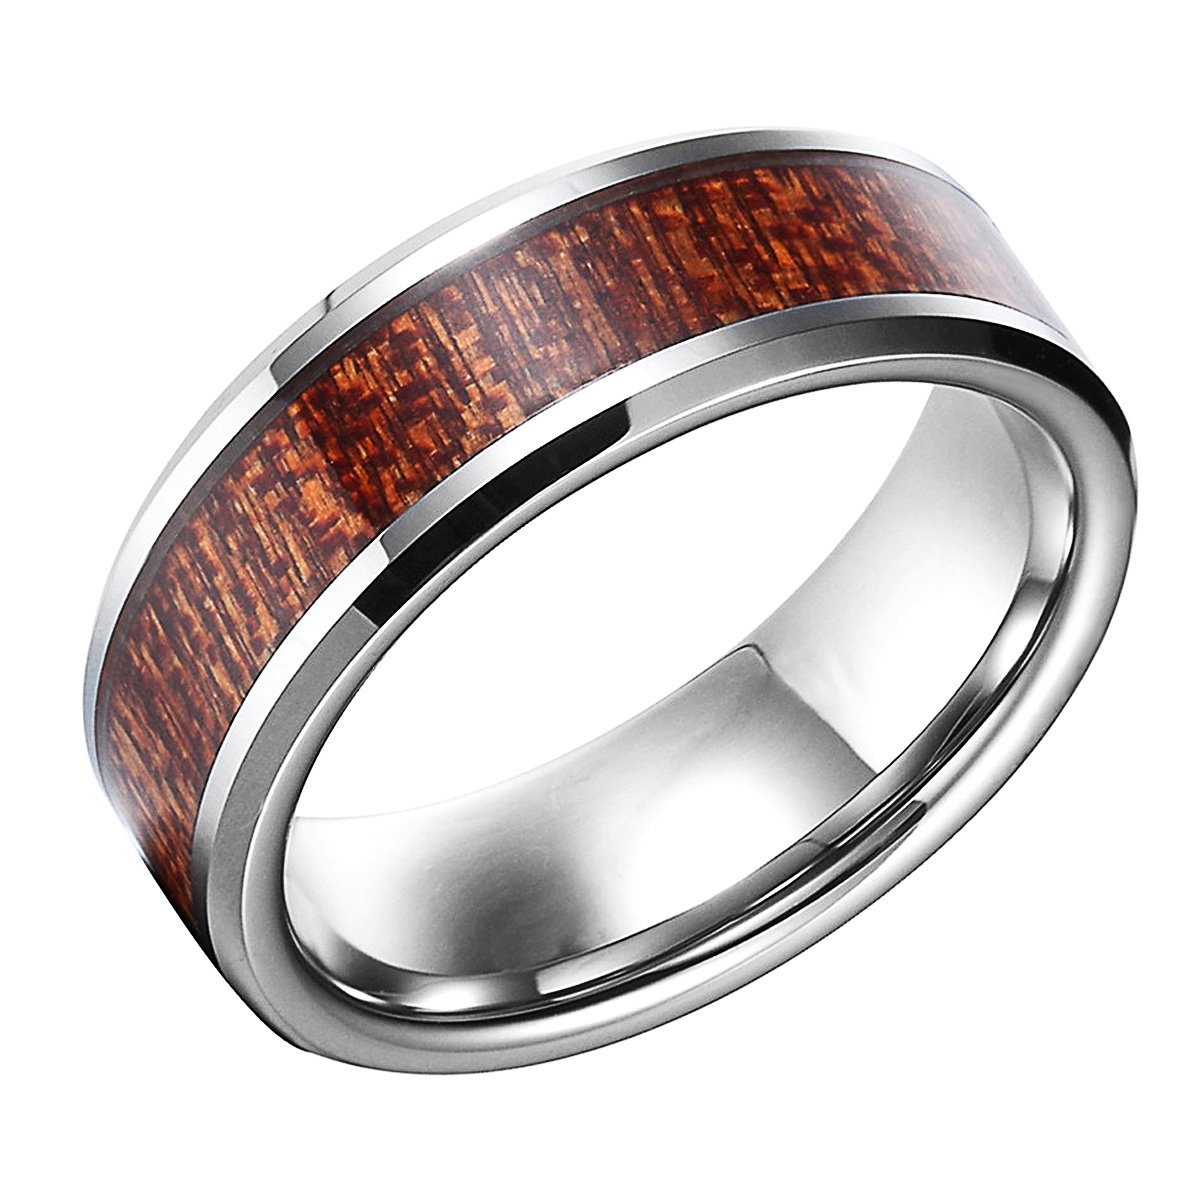 8mm Tungsten Carbide Inlay Wood Grain Bevel Edge Comfort Fit Couple Aniversary/engagement/wedding Band Ring (8) (13)